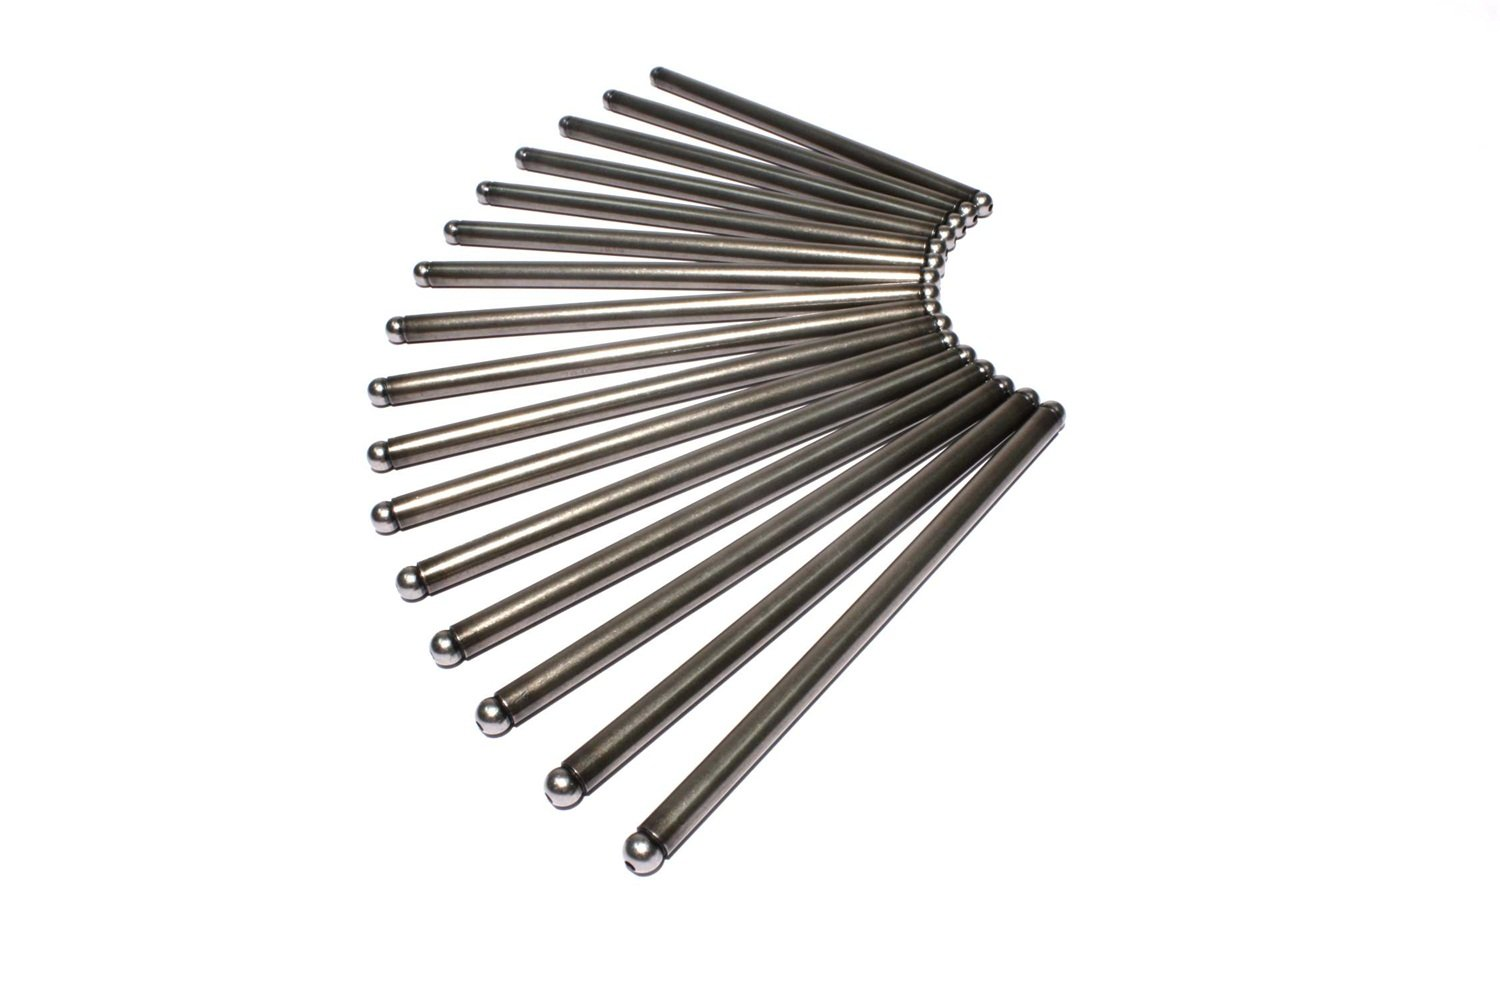 COMP Cams 7833-16 High Energy 9.621'' Long, 3/8'' Diameter Pushrod Set for '65-'72 Ford 352-428 FE w/ Non-Adjustable Rockers by Comp Cams